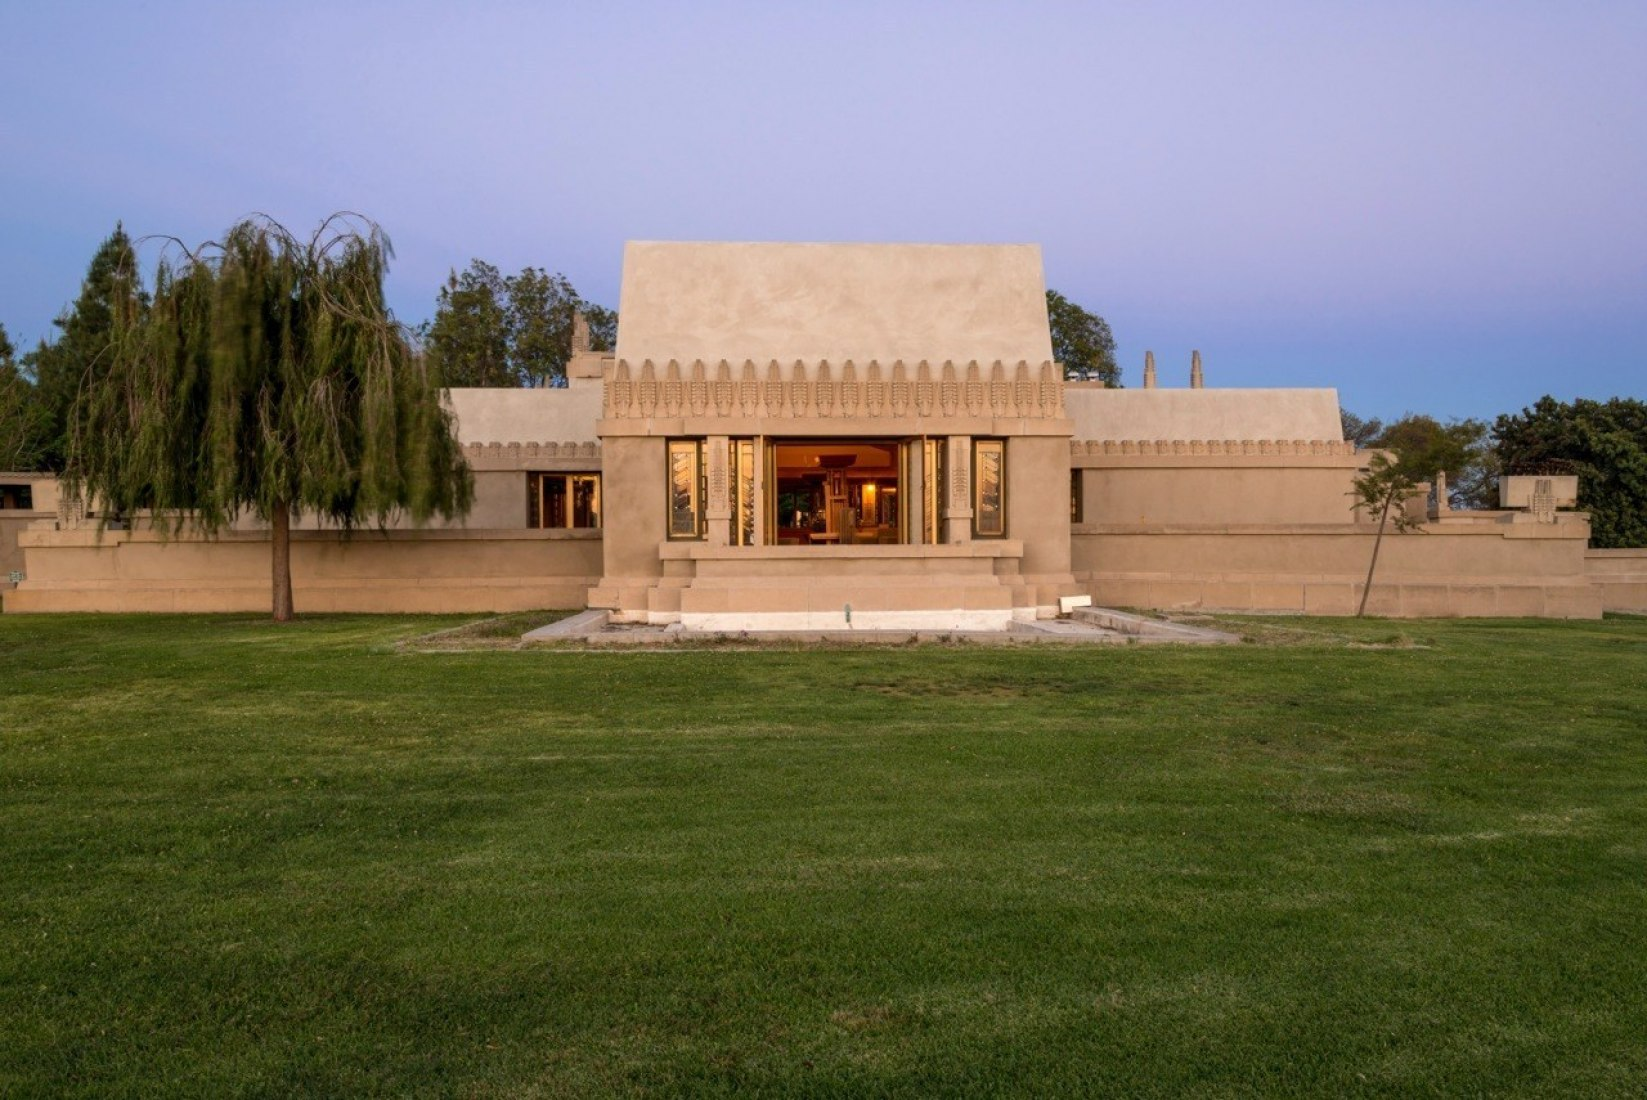 Frank Lloyd Wright's Iconic Hollyhock House. Photography by Joshua White. © PRNewsFoto/City of Los Angeles Department. Courtesy of City of Los Angeles Department.